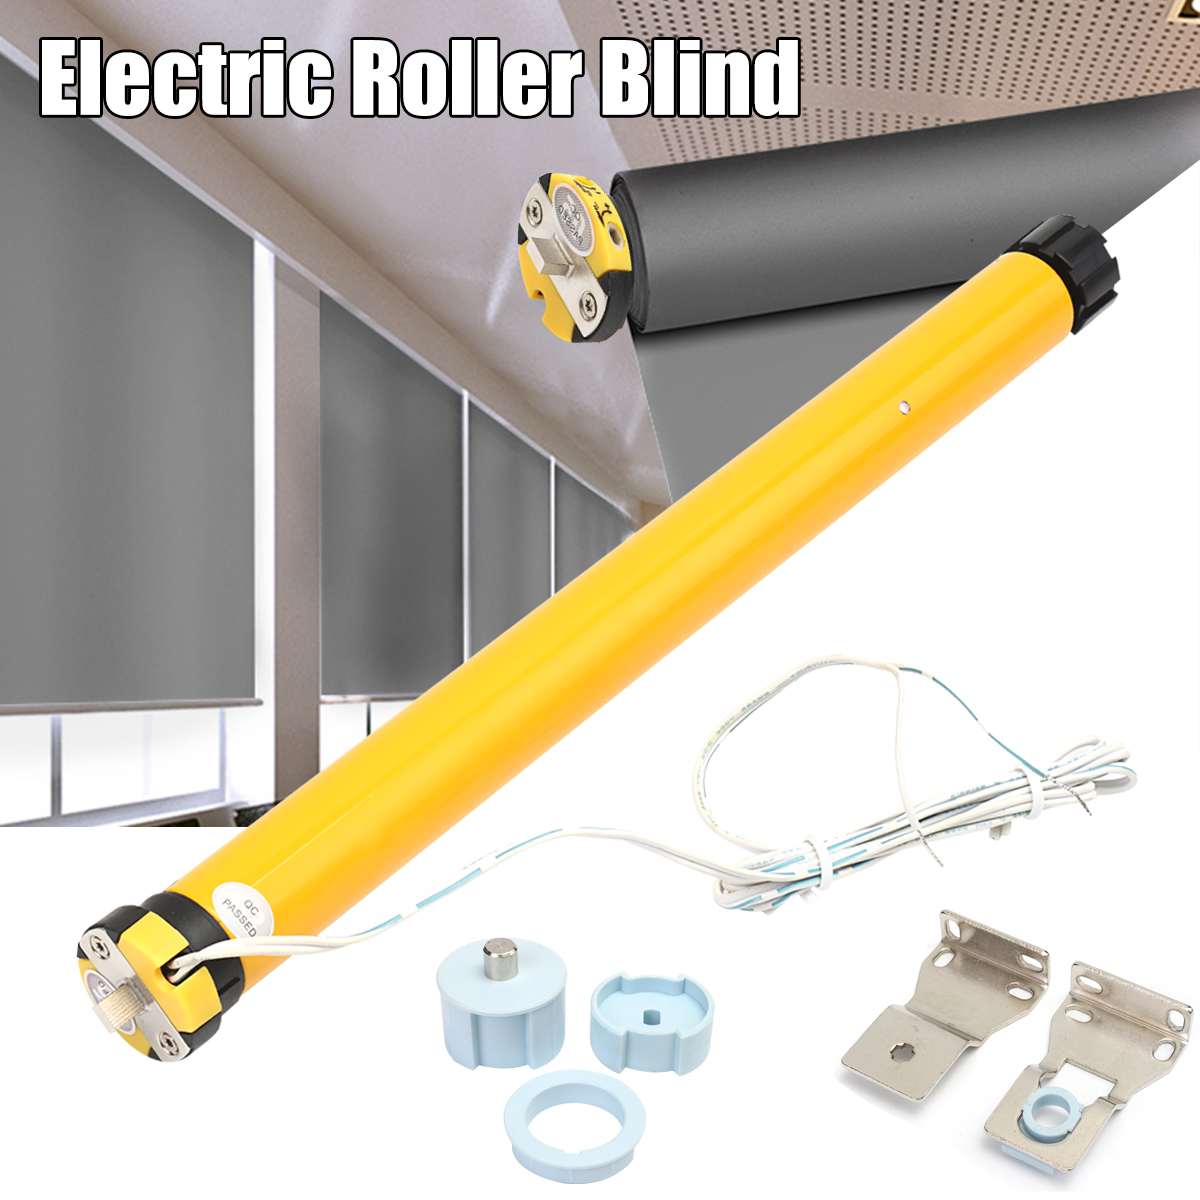 DC <font><b>12V</b></font> 11W <font><b>25mm</b></font> DIY 30RPM Electric Roller Blind / Shade Tubular <font><b>Motor</b></font> Kit Set High Quality image